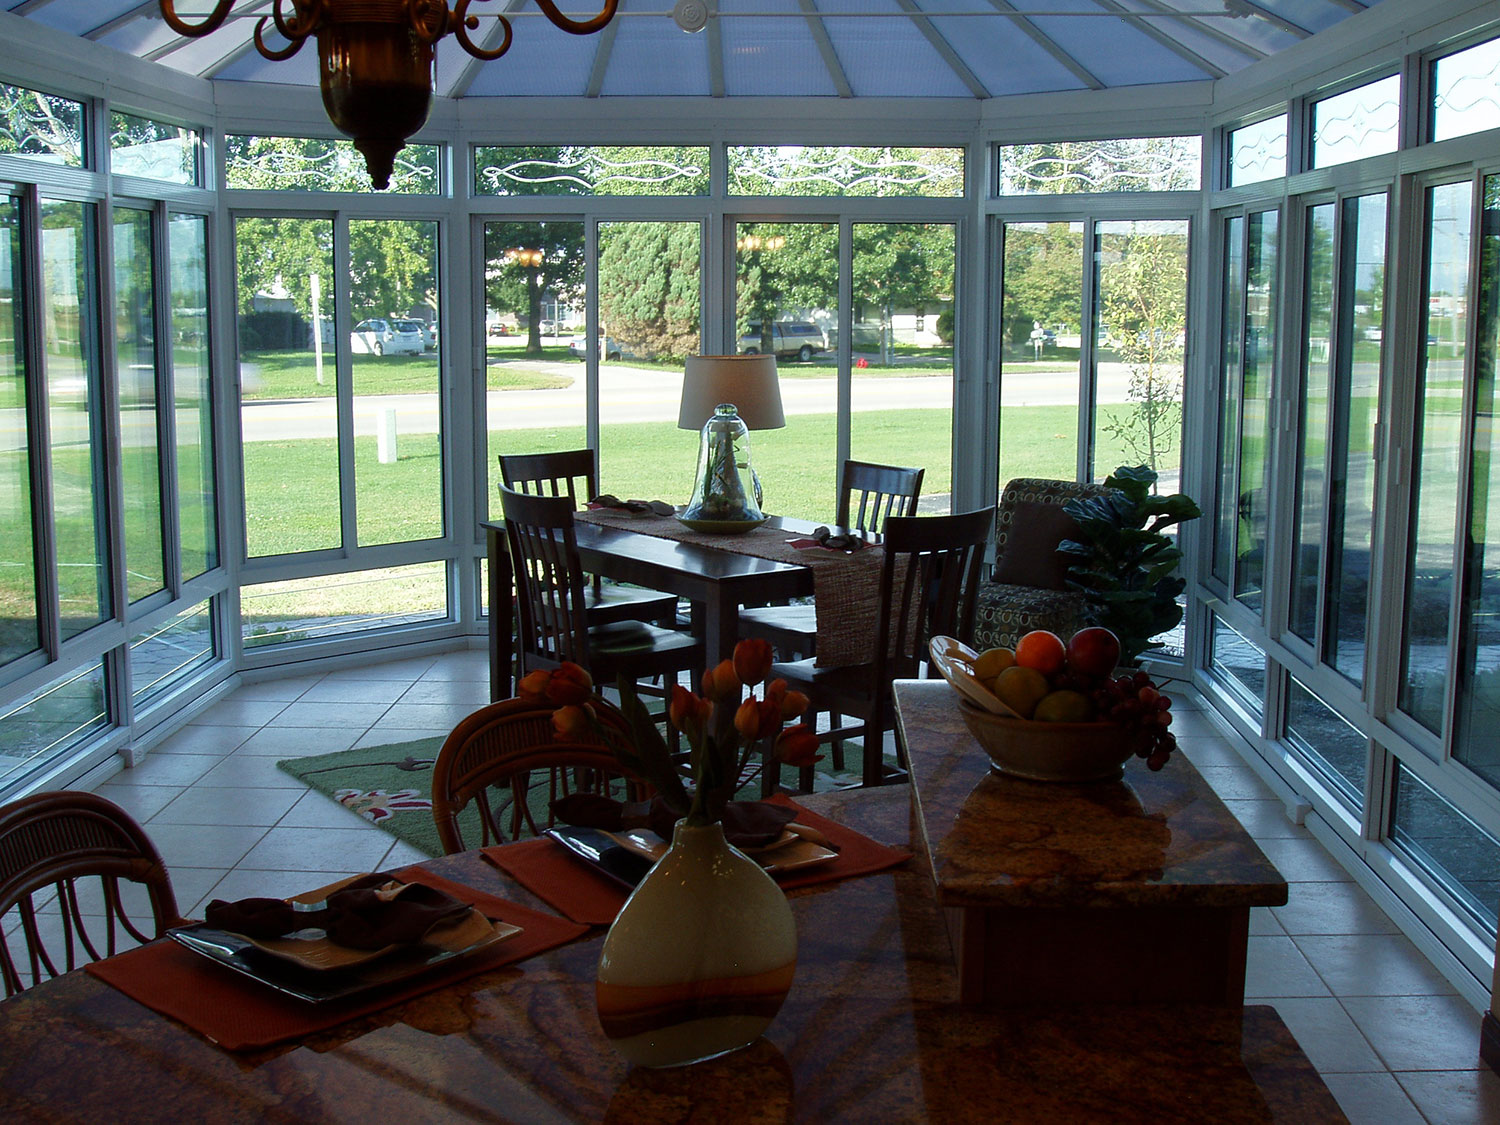 Iowa Conservatory Sunroom Installation   Interior View 2   Home Town restyling